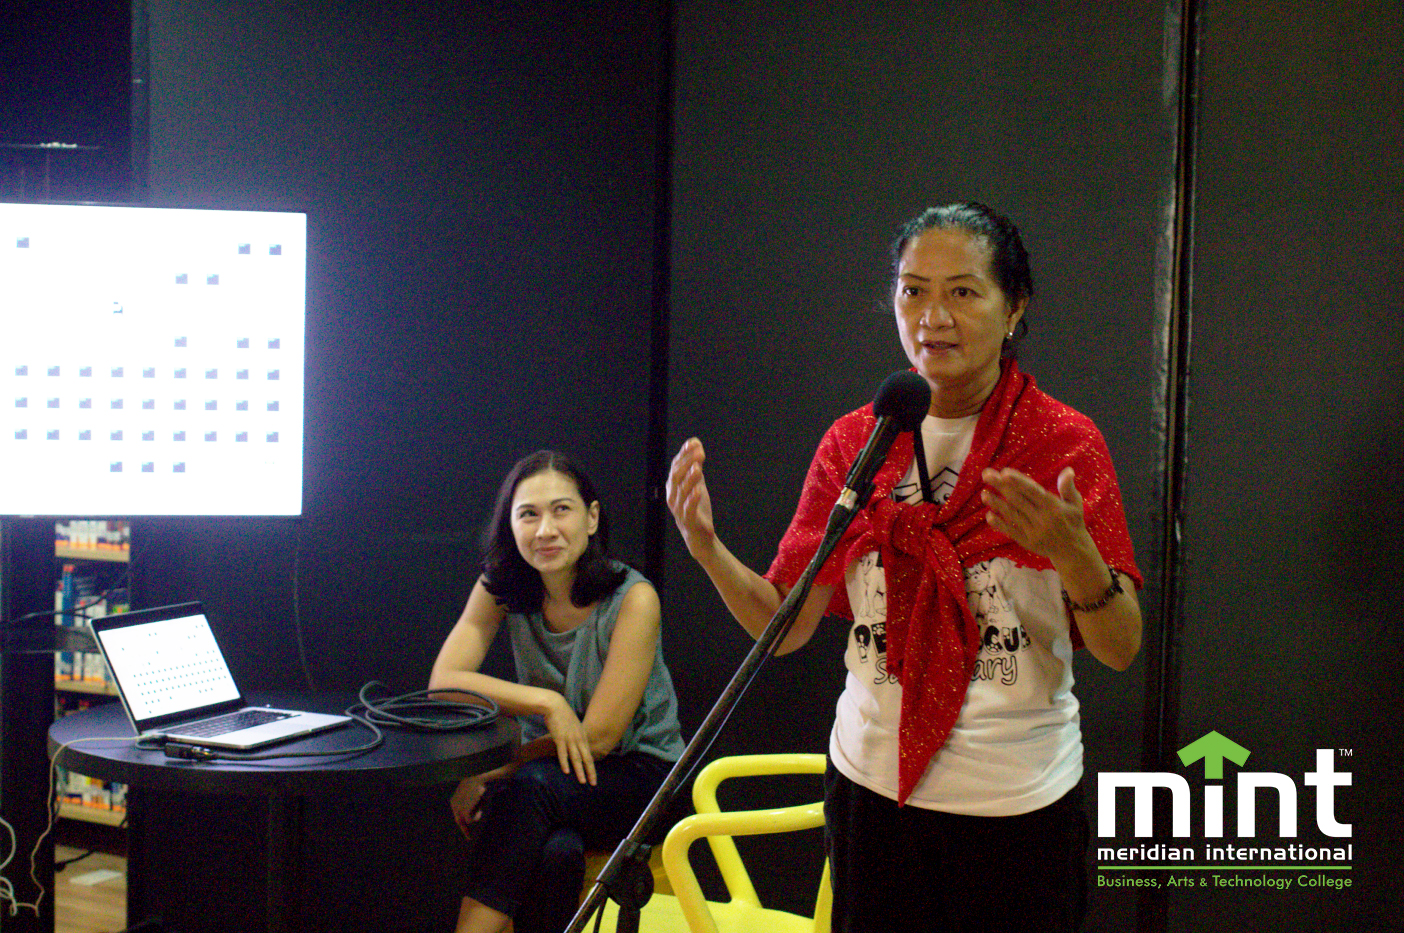 Susan Magallanes Espinosa from MBY Pet Rescue and Sanctuary delivers a talk on Animal Welfare Awareness at MINT College on February 27.